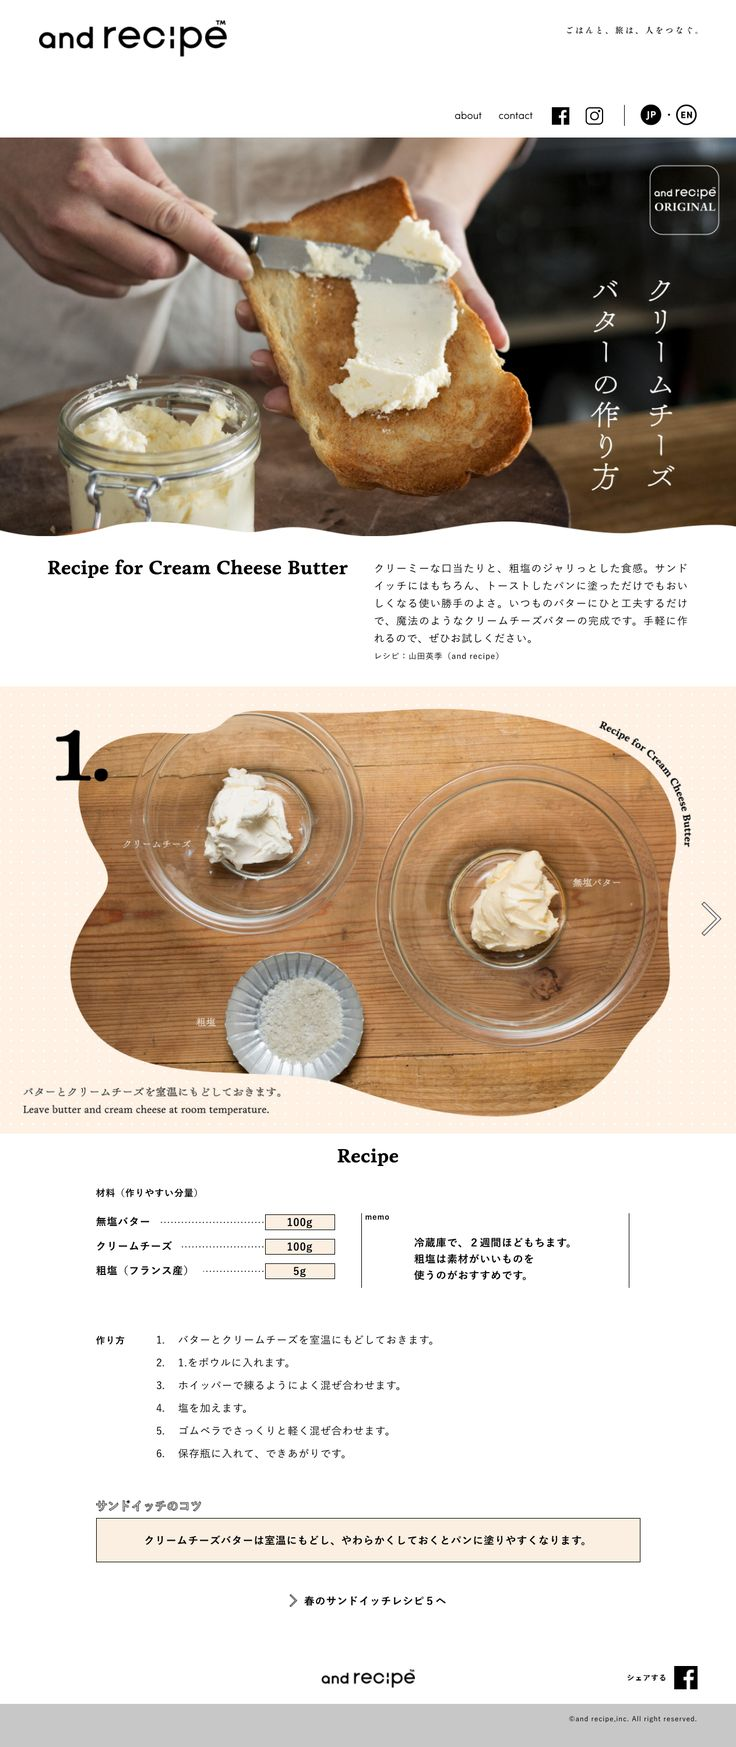 [and recipe] web magazine 3 | キタダデザイン